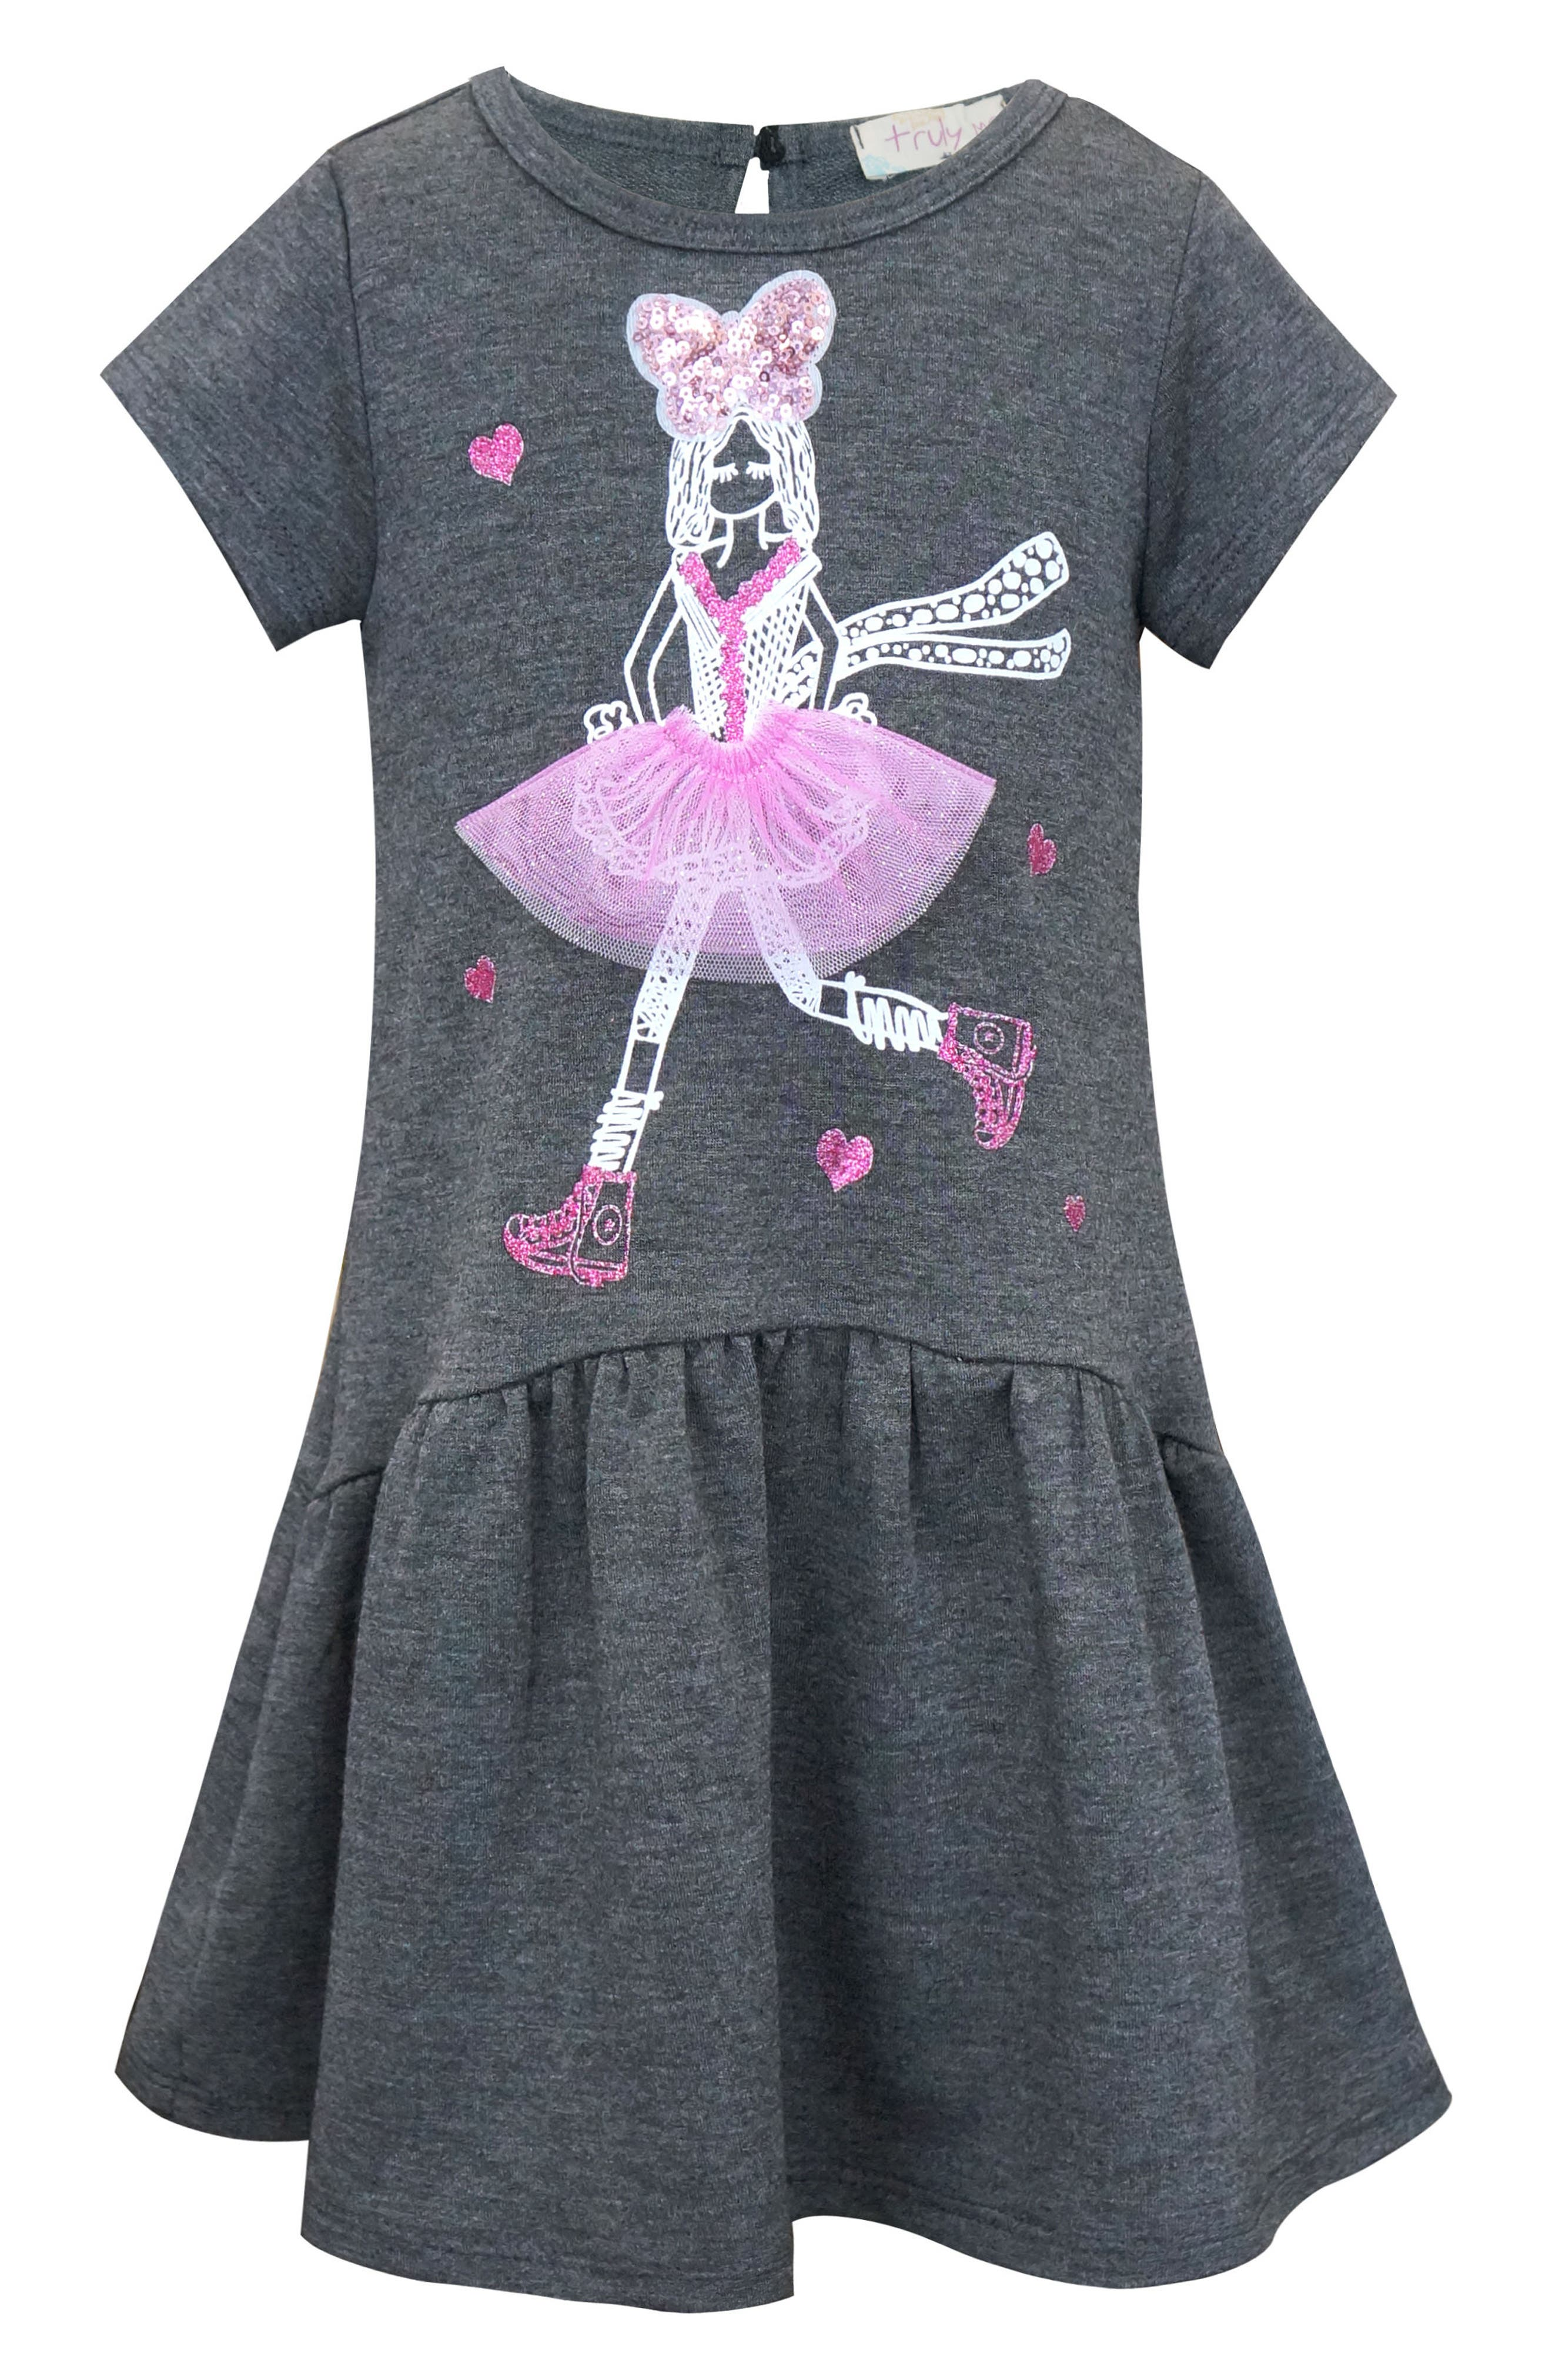 Truly Me Dimensional Graphic Dress (Toddler Girls & Little Girls) (Special Purchase)